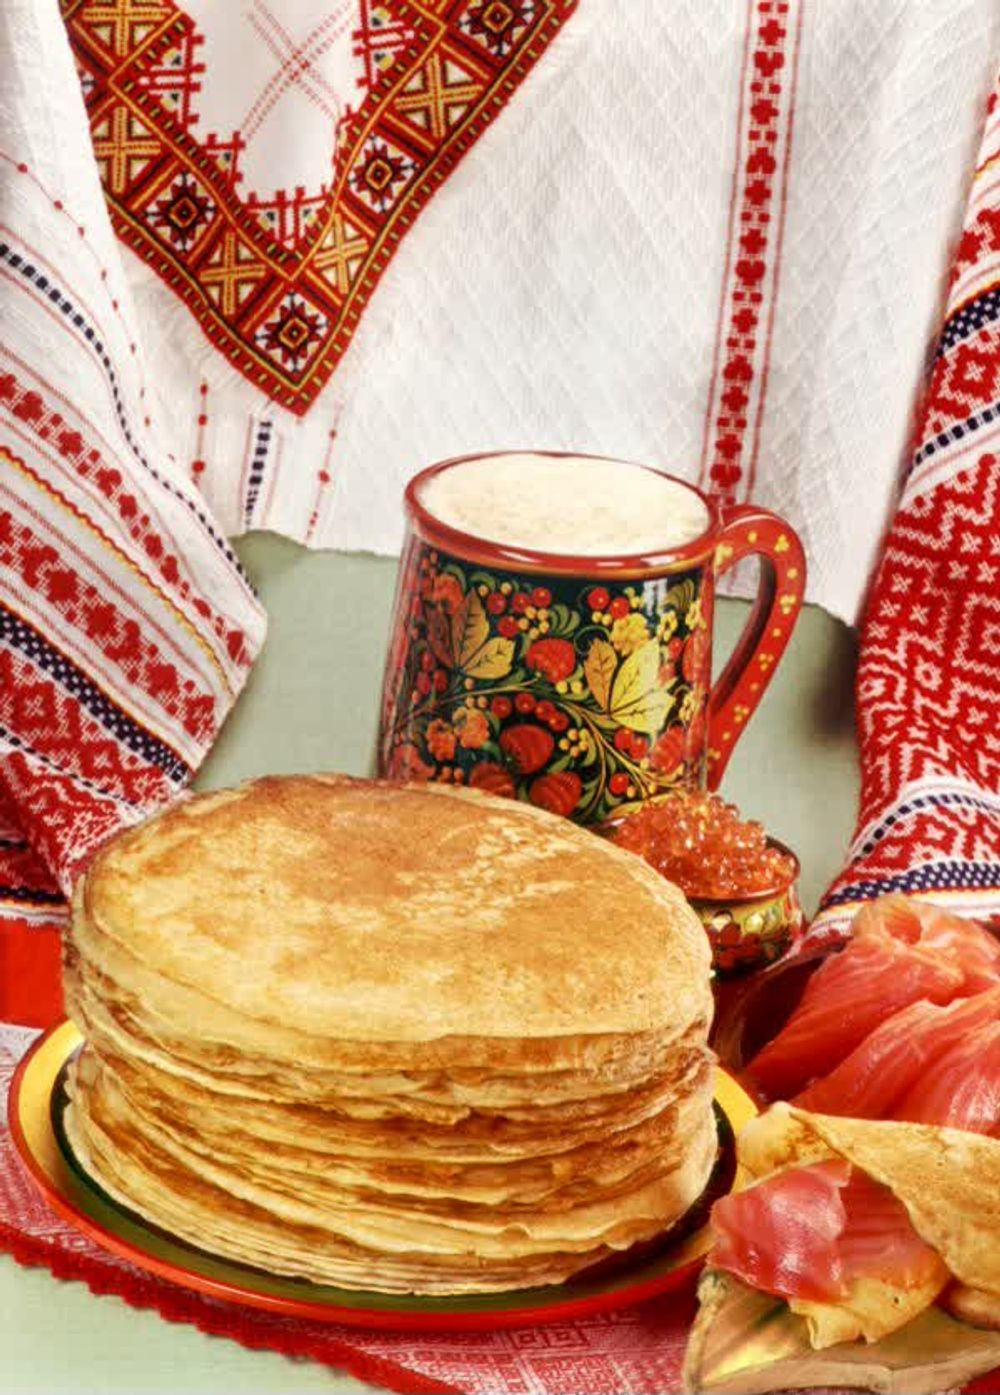 Traditional Blini Russian Pancakes with Smoked Salmon and Sour Cream